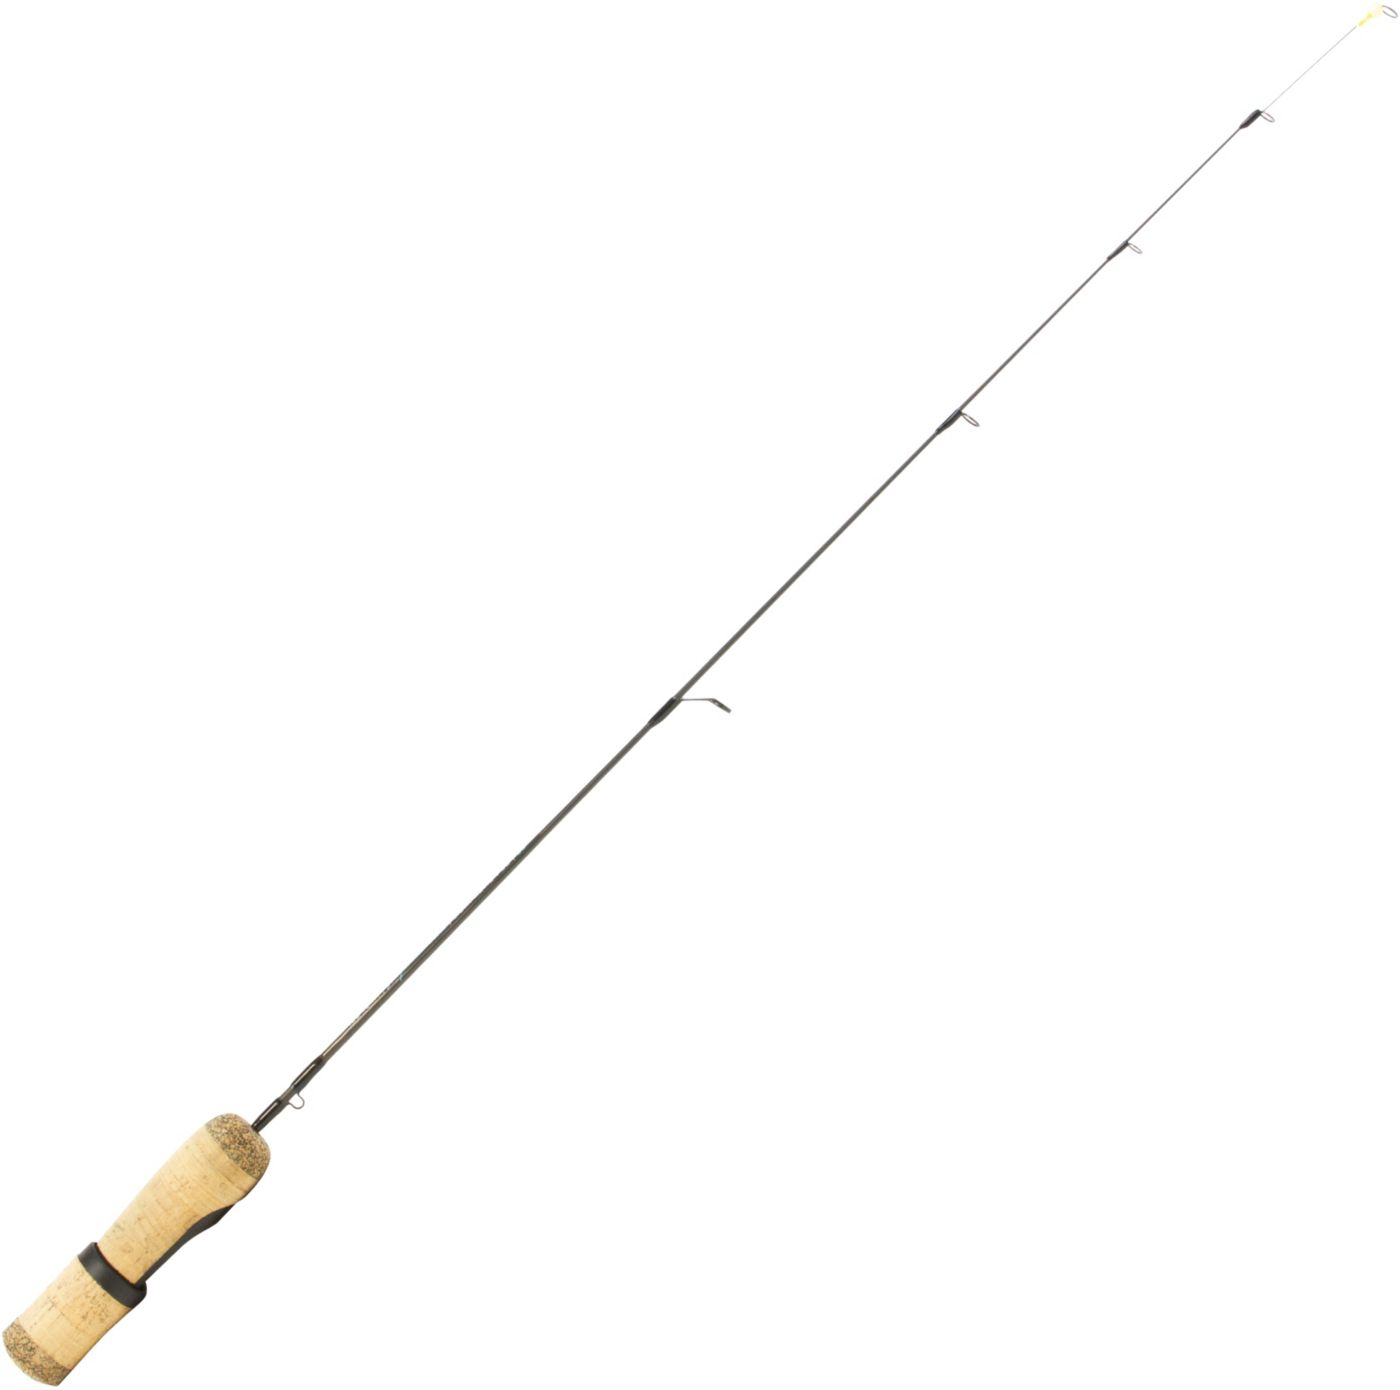 Clam Ice Team Professional Matt Johnson Pinfish Ice Fishing Rod with Spring Bobber